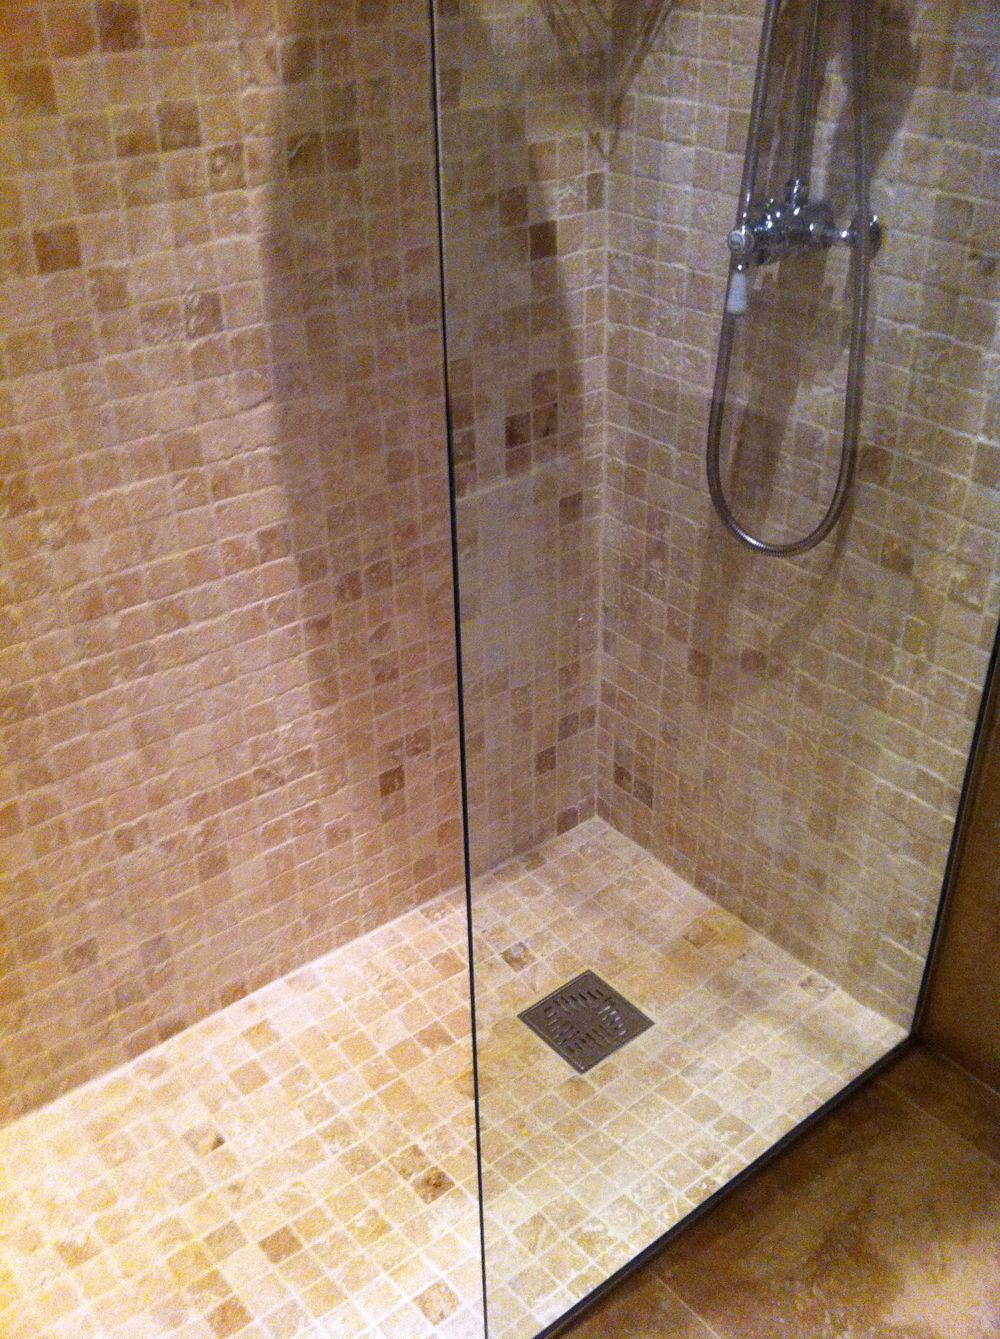 Wet Room Ideas   Bespoke Wet Room Designs   Picture 559 Preview. Wet Room Ideas   Bespoke Wet Room Designs   Picture 559 Preview